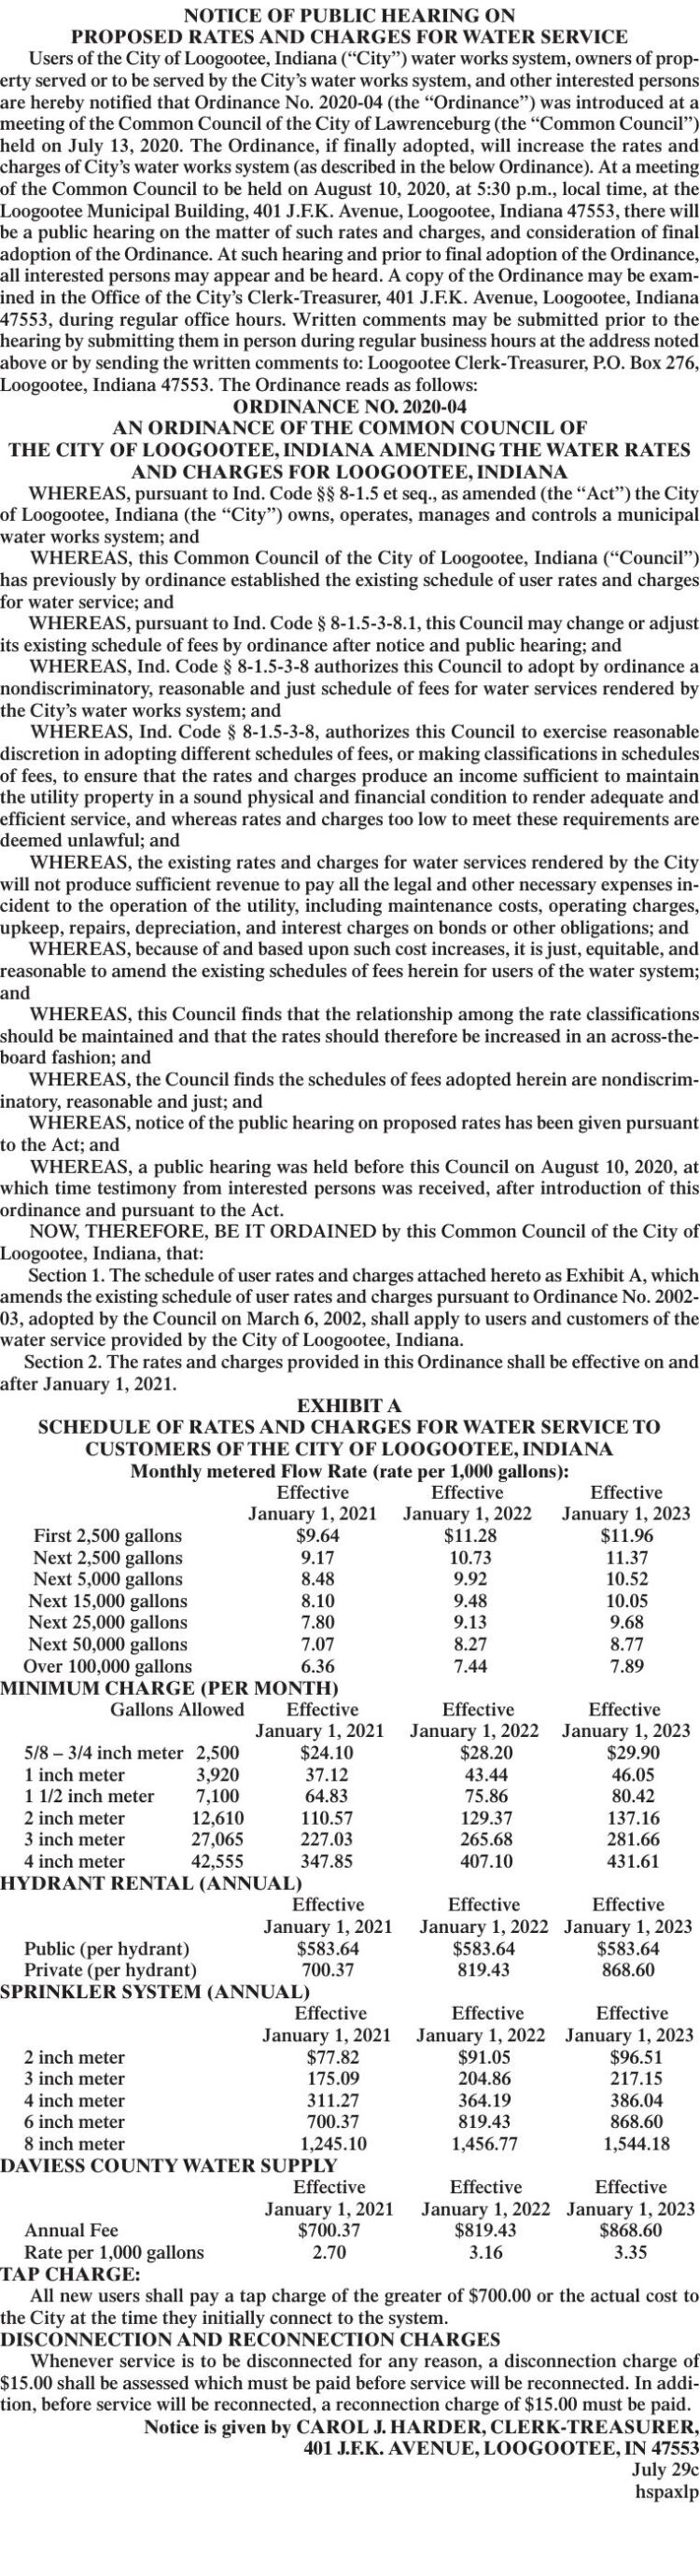 NOTICE OF PUBLIC HEARING ON PROPOSED RATES AND CHARGES FOR WATER SERVICE LOOGOOTEE